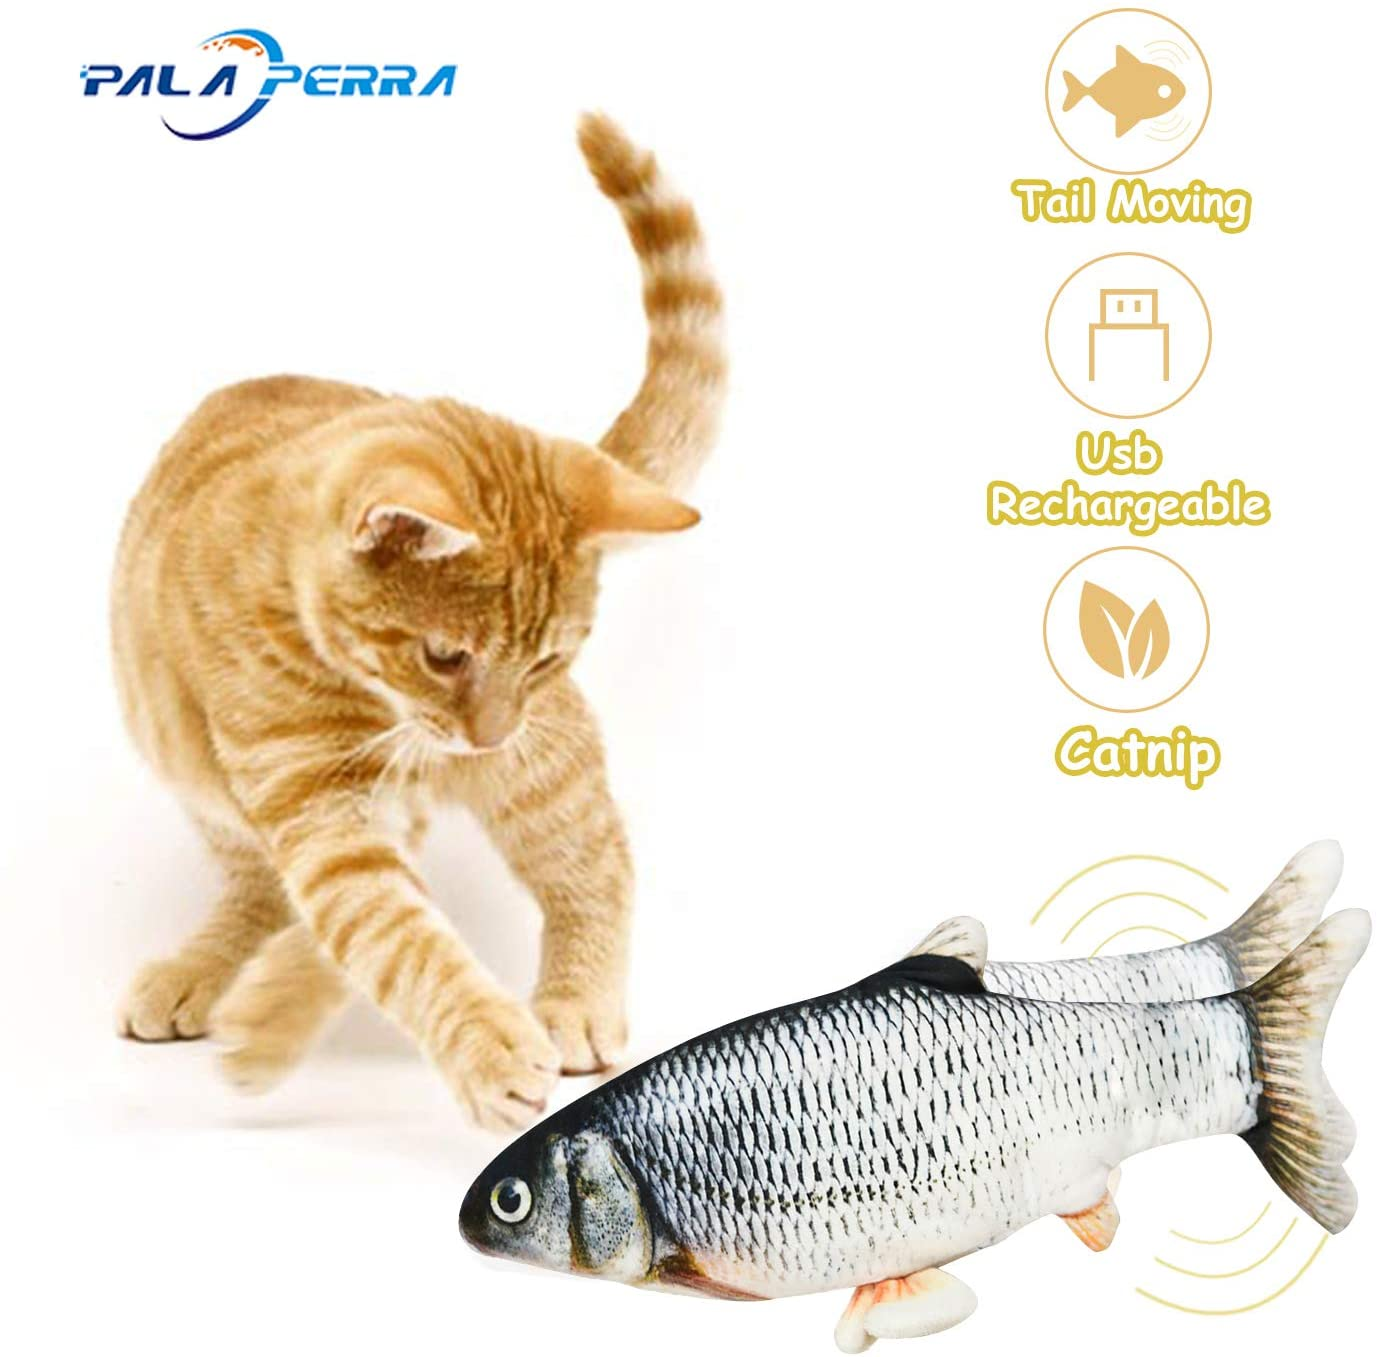 PALA PERRA Catnip Toy, Electric Moving Fish Cat Toy with Catnip, Realistic Plush Simulation Electric Wagging Fish Cat Toy for Cat Exercise, Funny Interactive Pets Pillow Chew Bite Kick Supplies